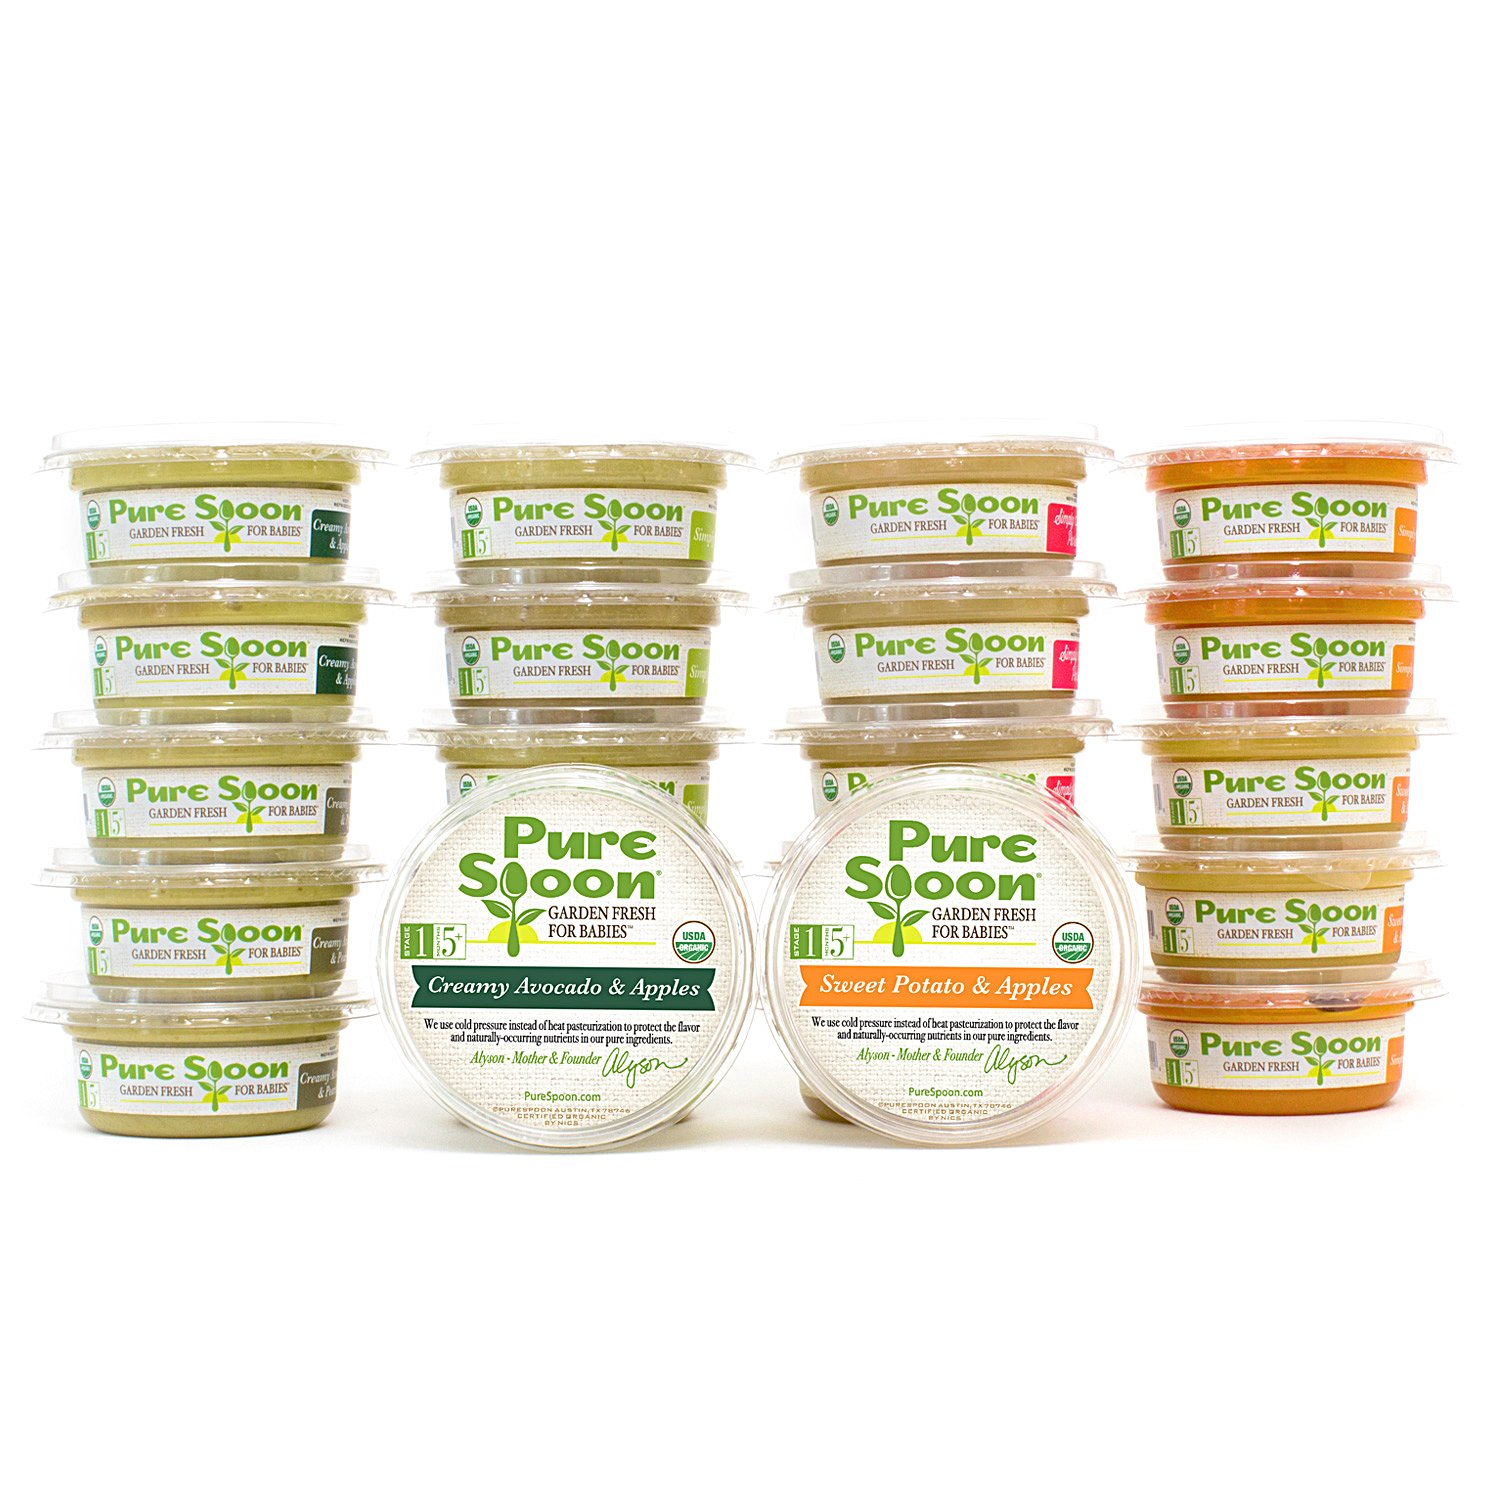 Pure Spoon Garden Fresh Organic Stage 1 Baby Food Sampler, 4.2oz (Pack Of 24)